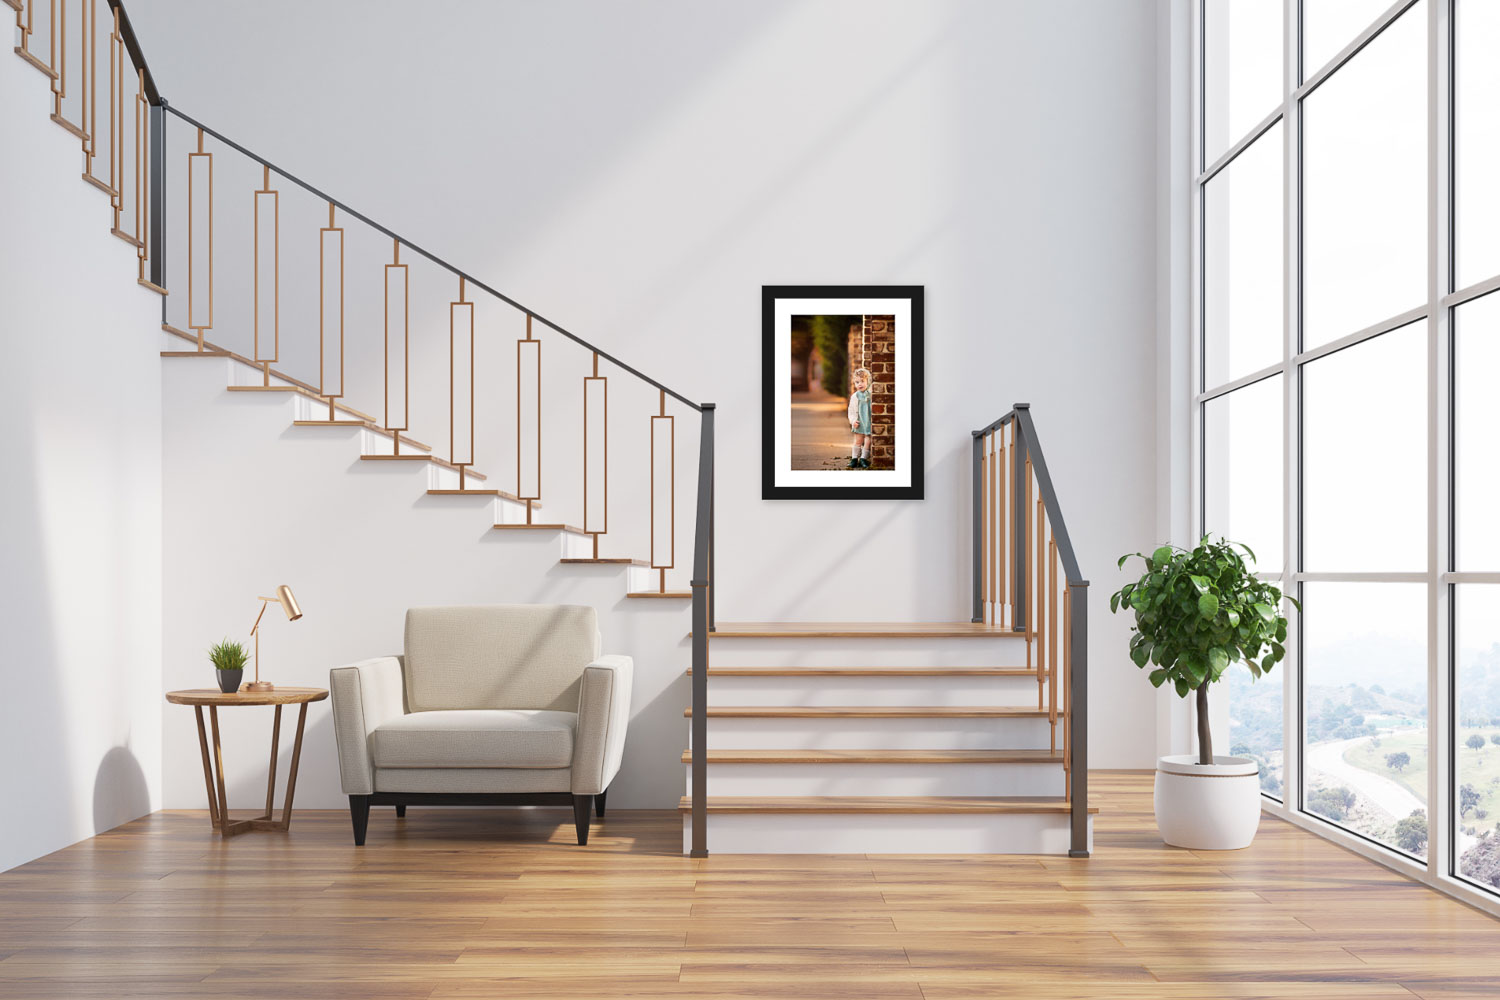 Gorgeous framed staircase wall art portrait of toddler girl taken by Picadilly Studios in Boro Park, Brooklyn, NY.